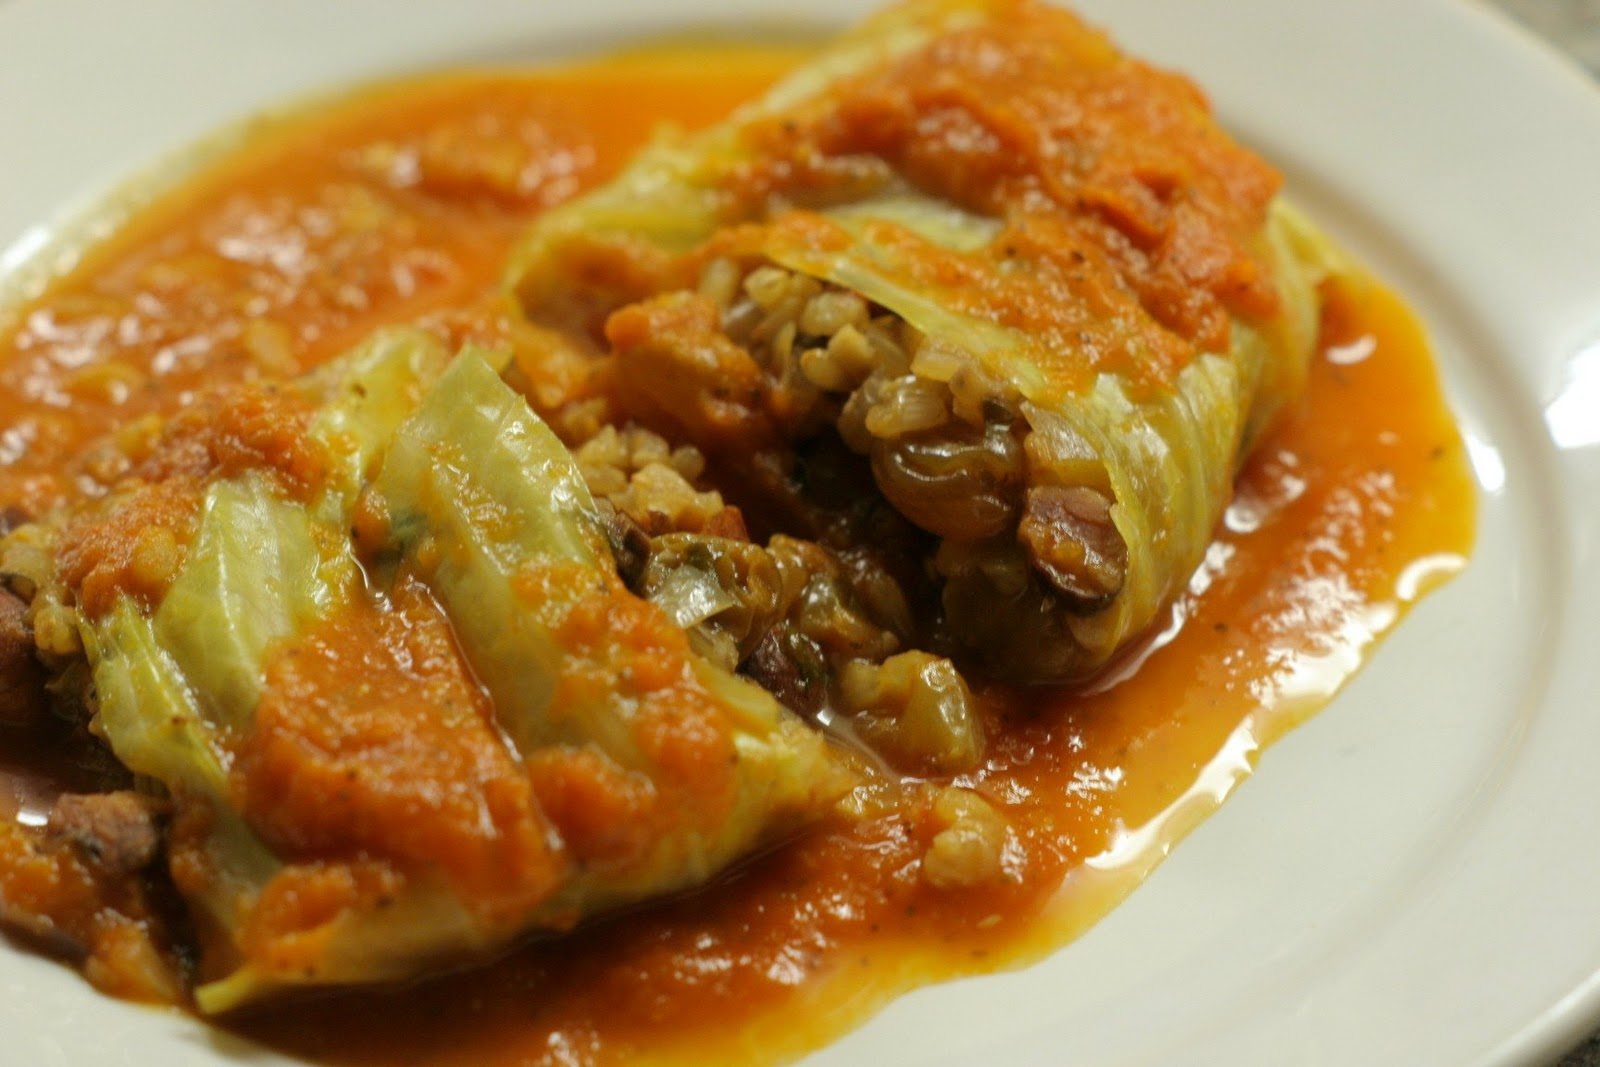 Four seasons of food: Stuffed cabbage leaves